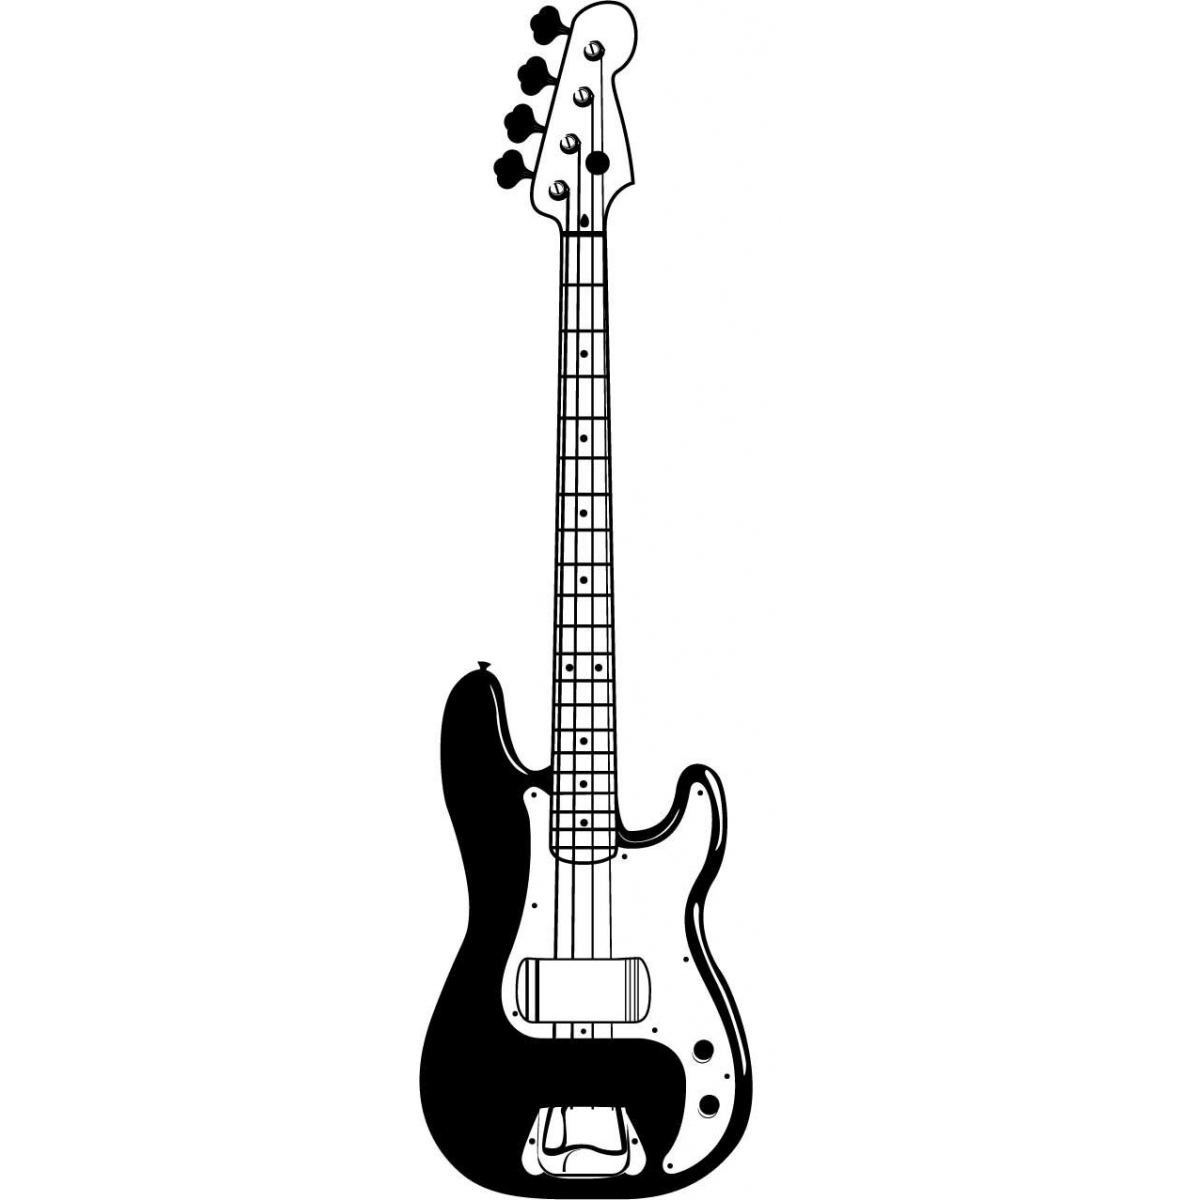 Pictures Of Electric Guitar